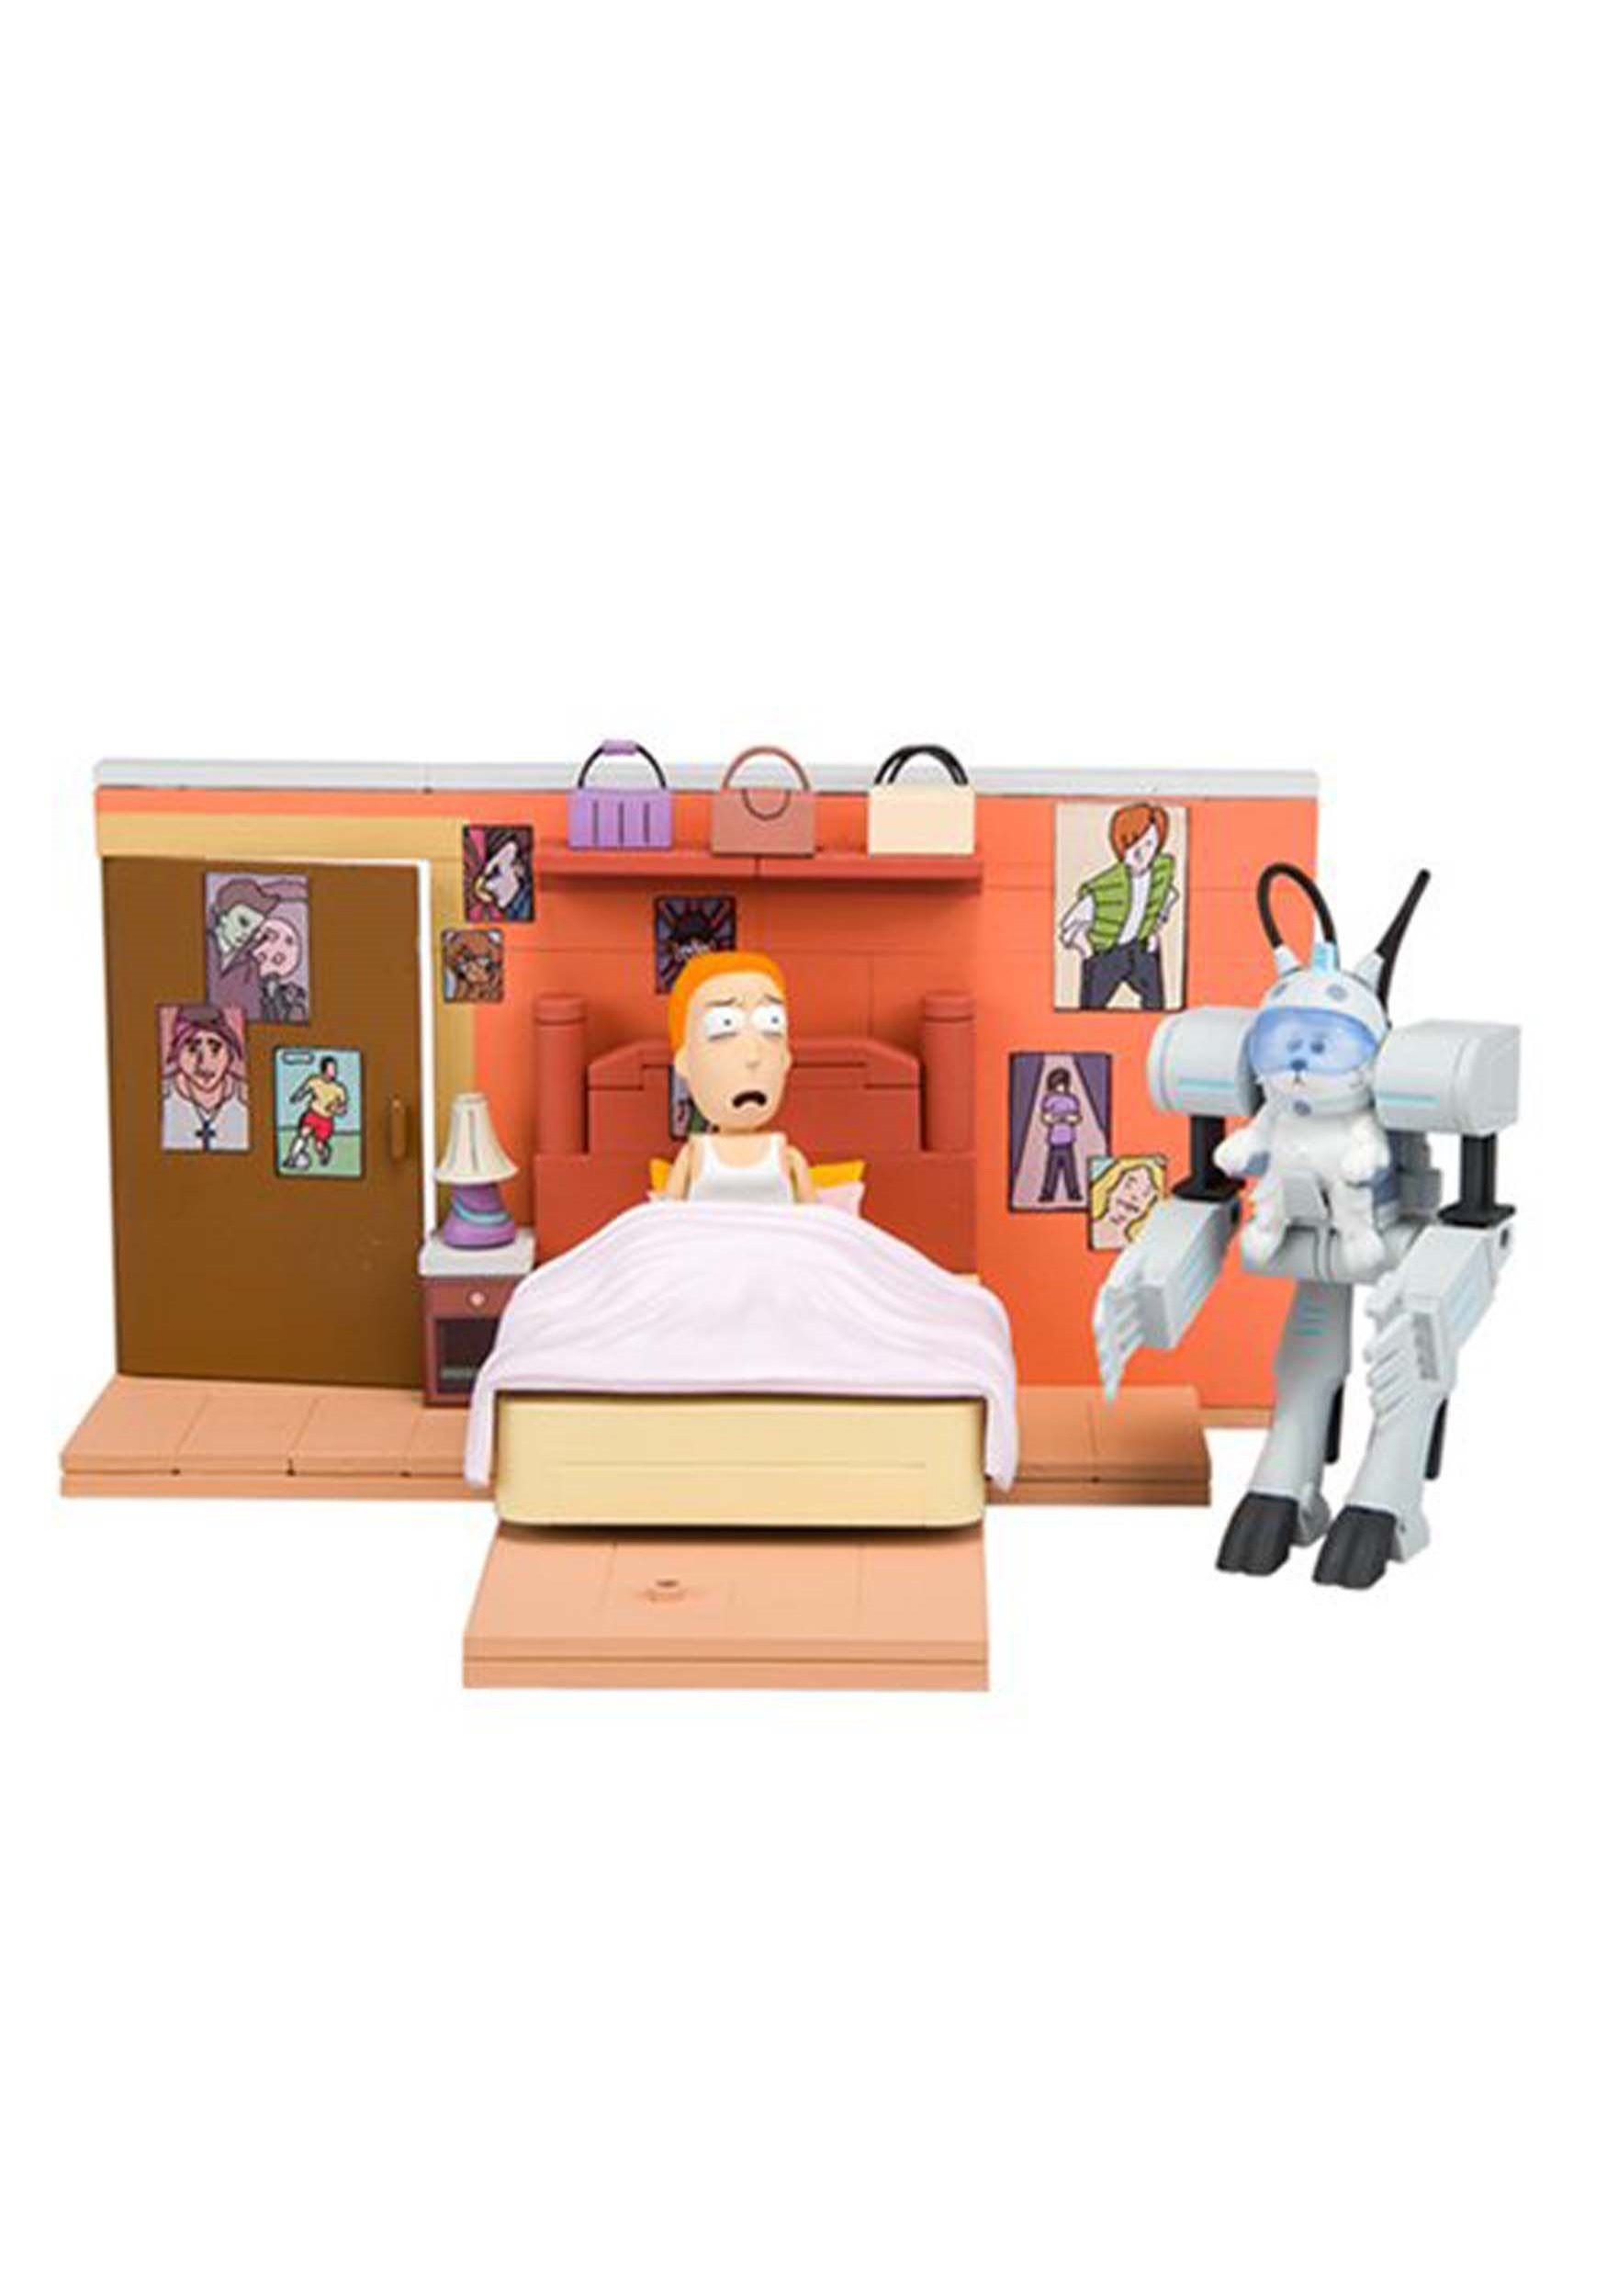 Rick and Morty You Shall Now Call Me Snowball Construction Set